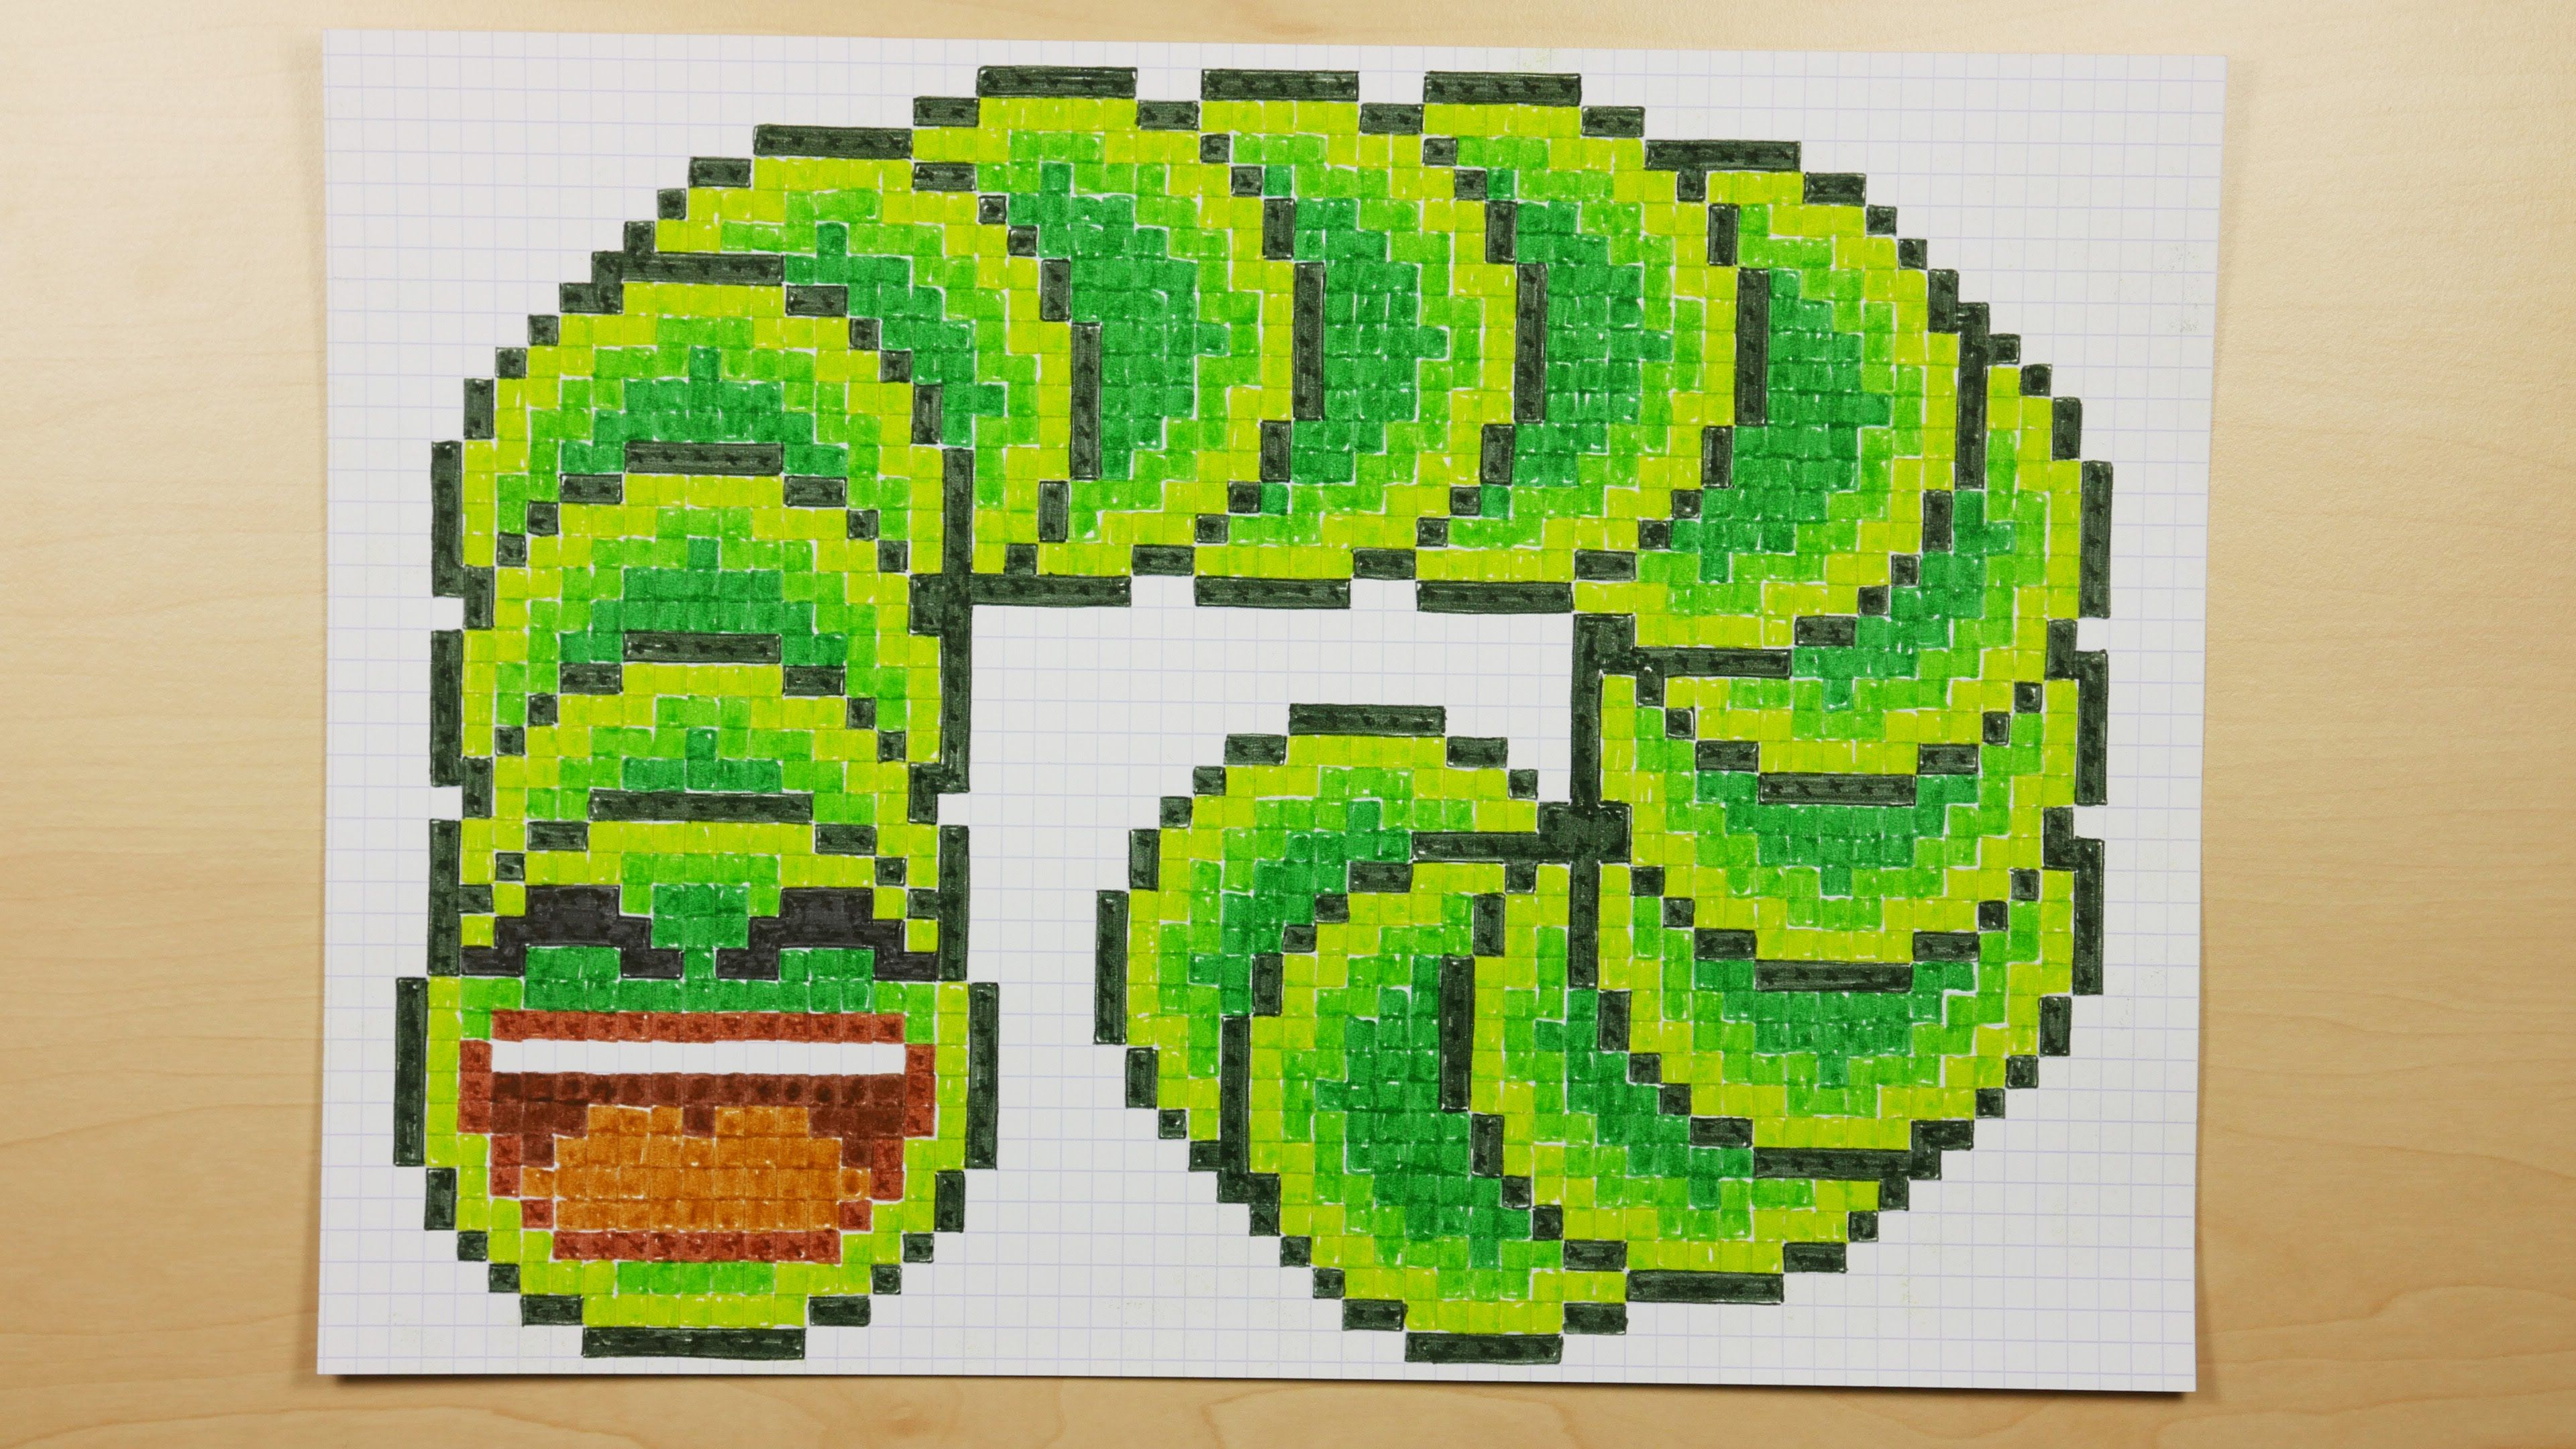 How to Draw a Video Game Slither.io Jelly Snake - Pixel Art Doodle ...